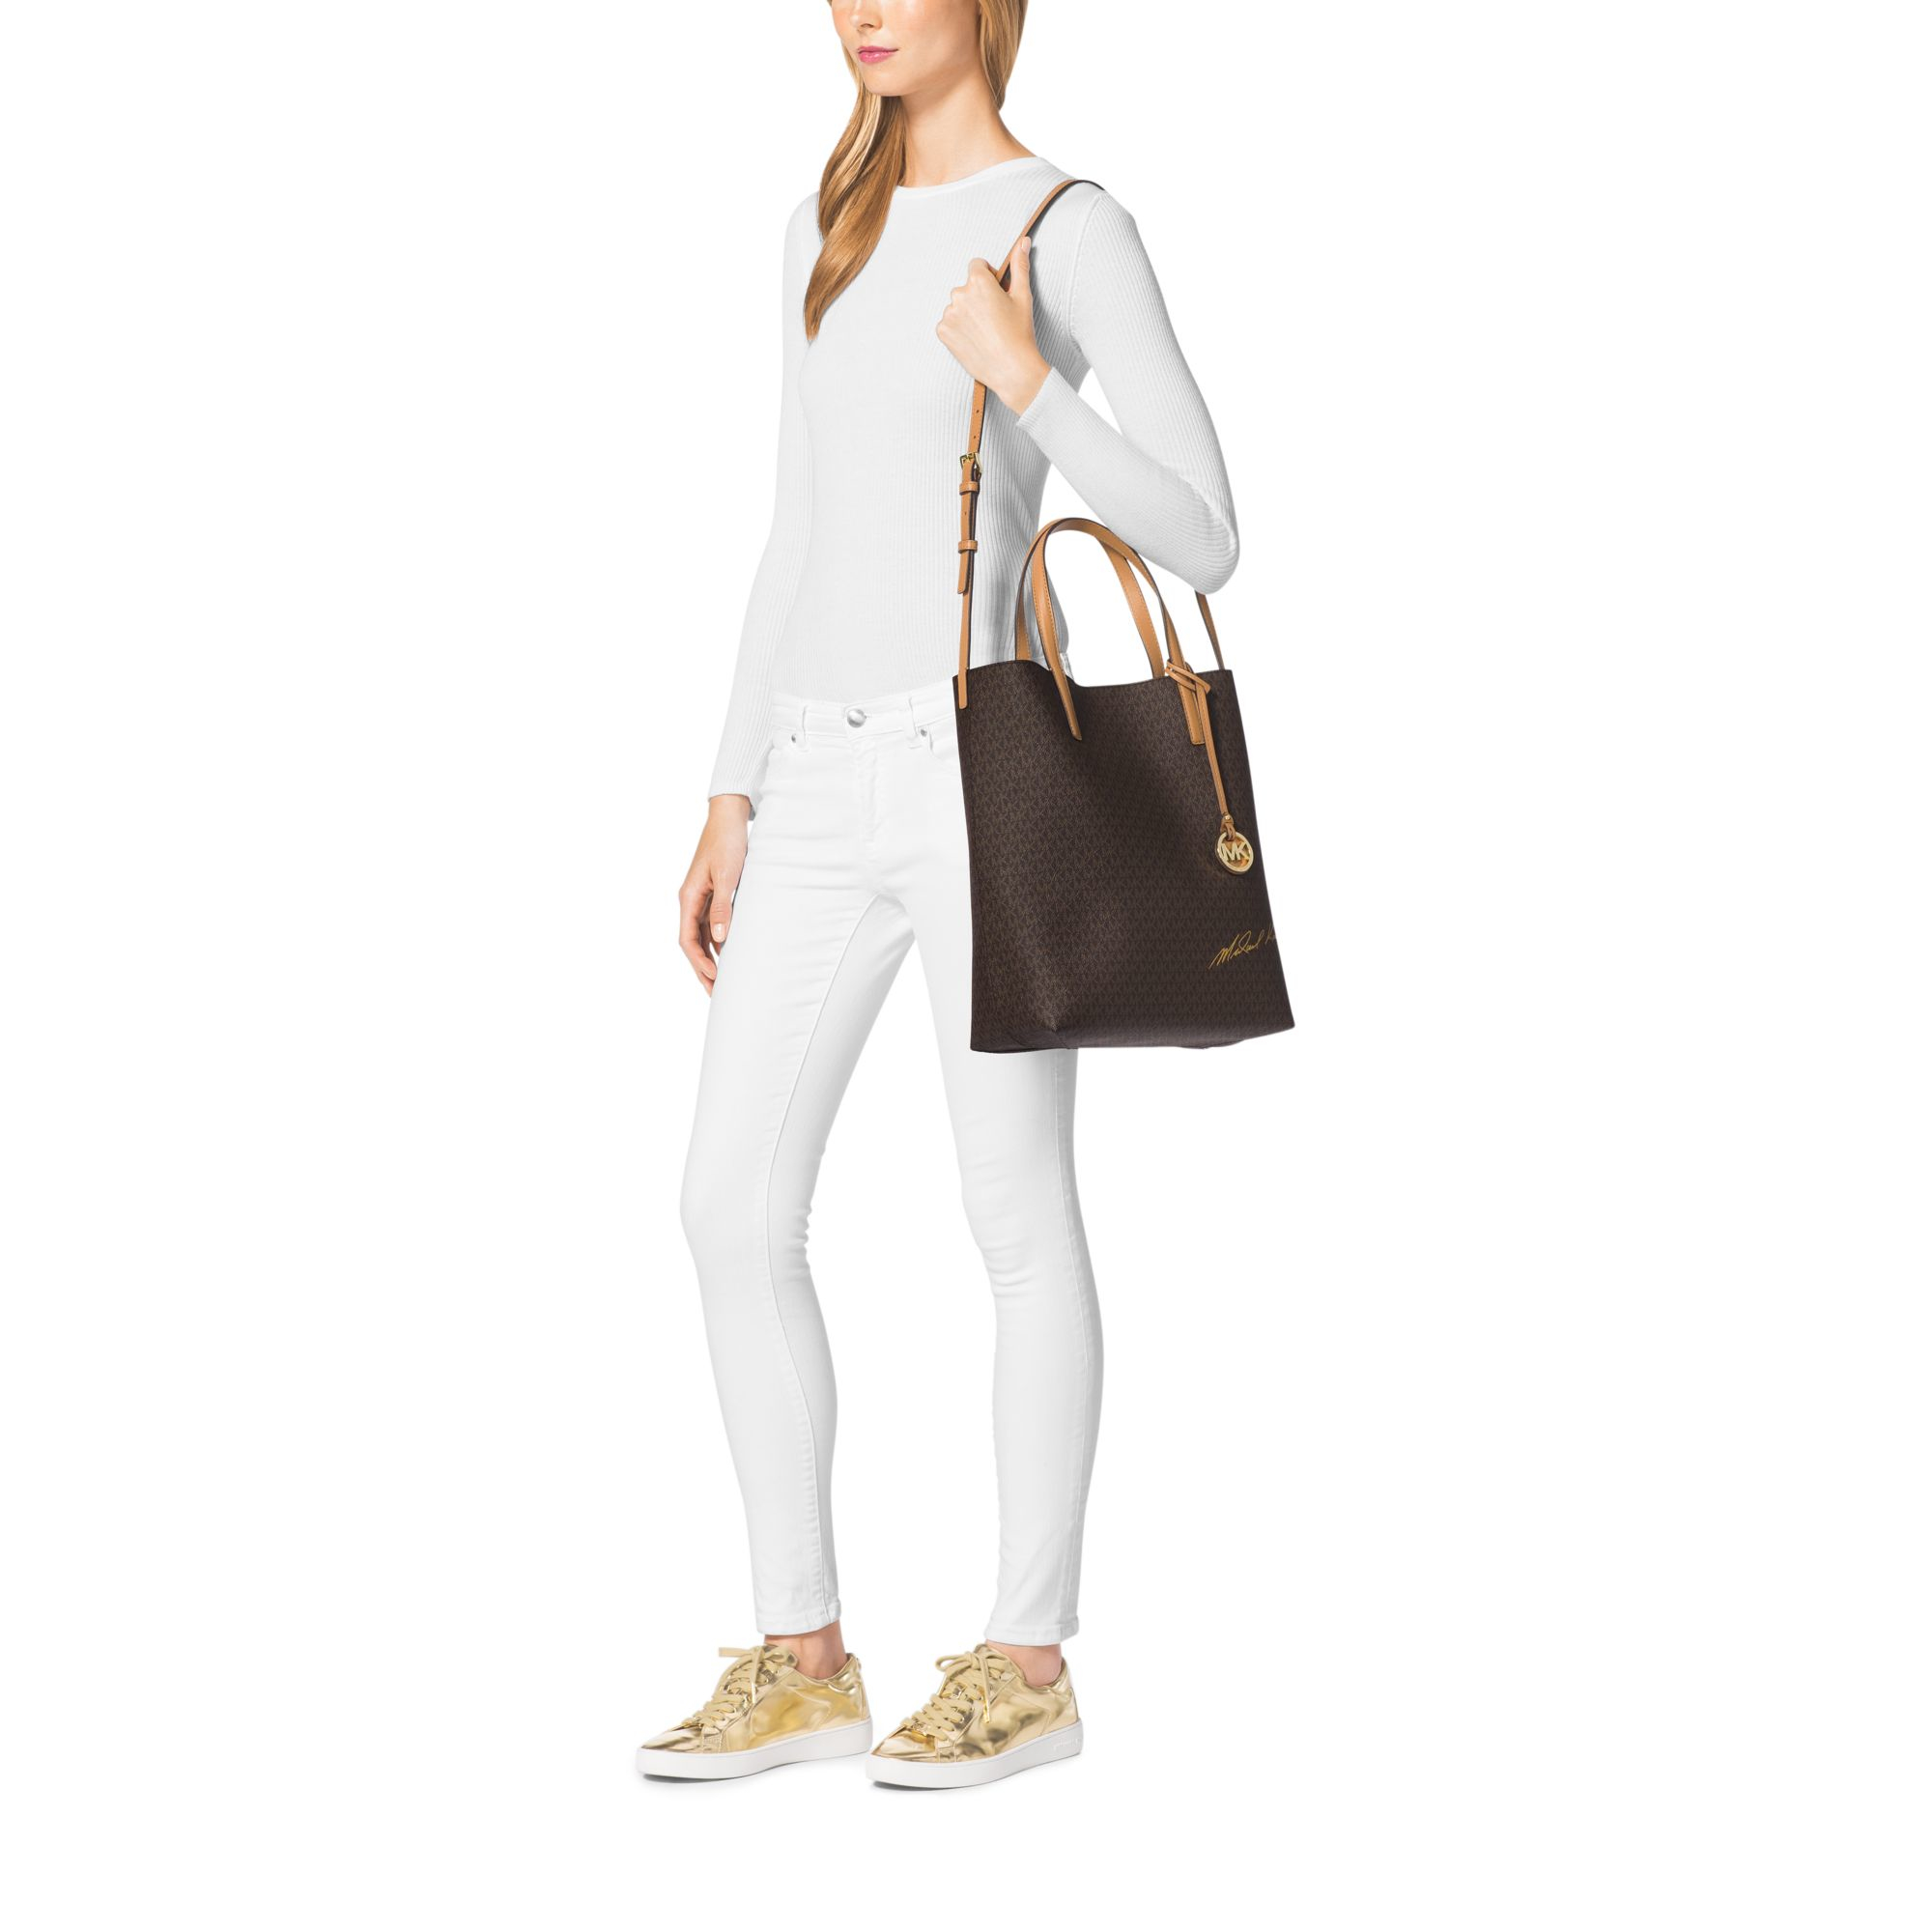 096c6d2fbb1e Michael Kors Signature Logo Large Convertible Tote in Brown - Lyst